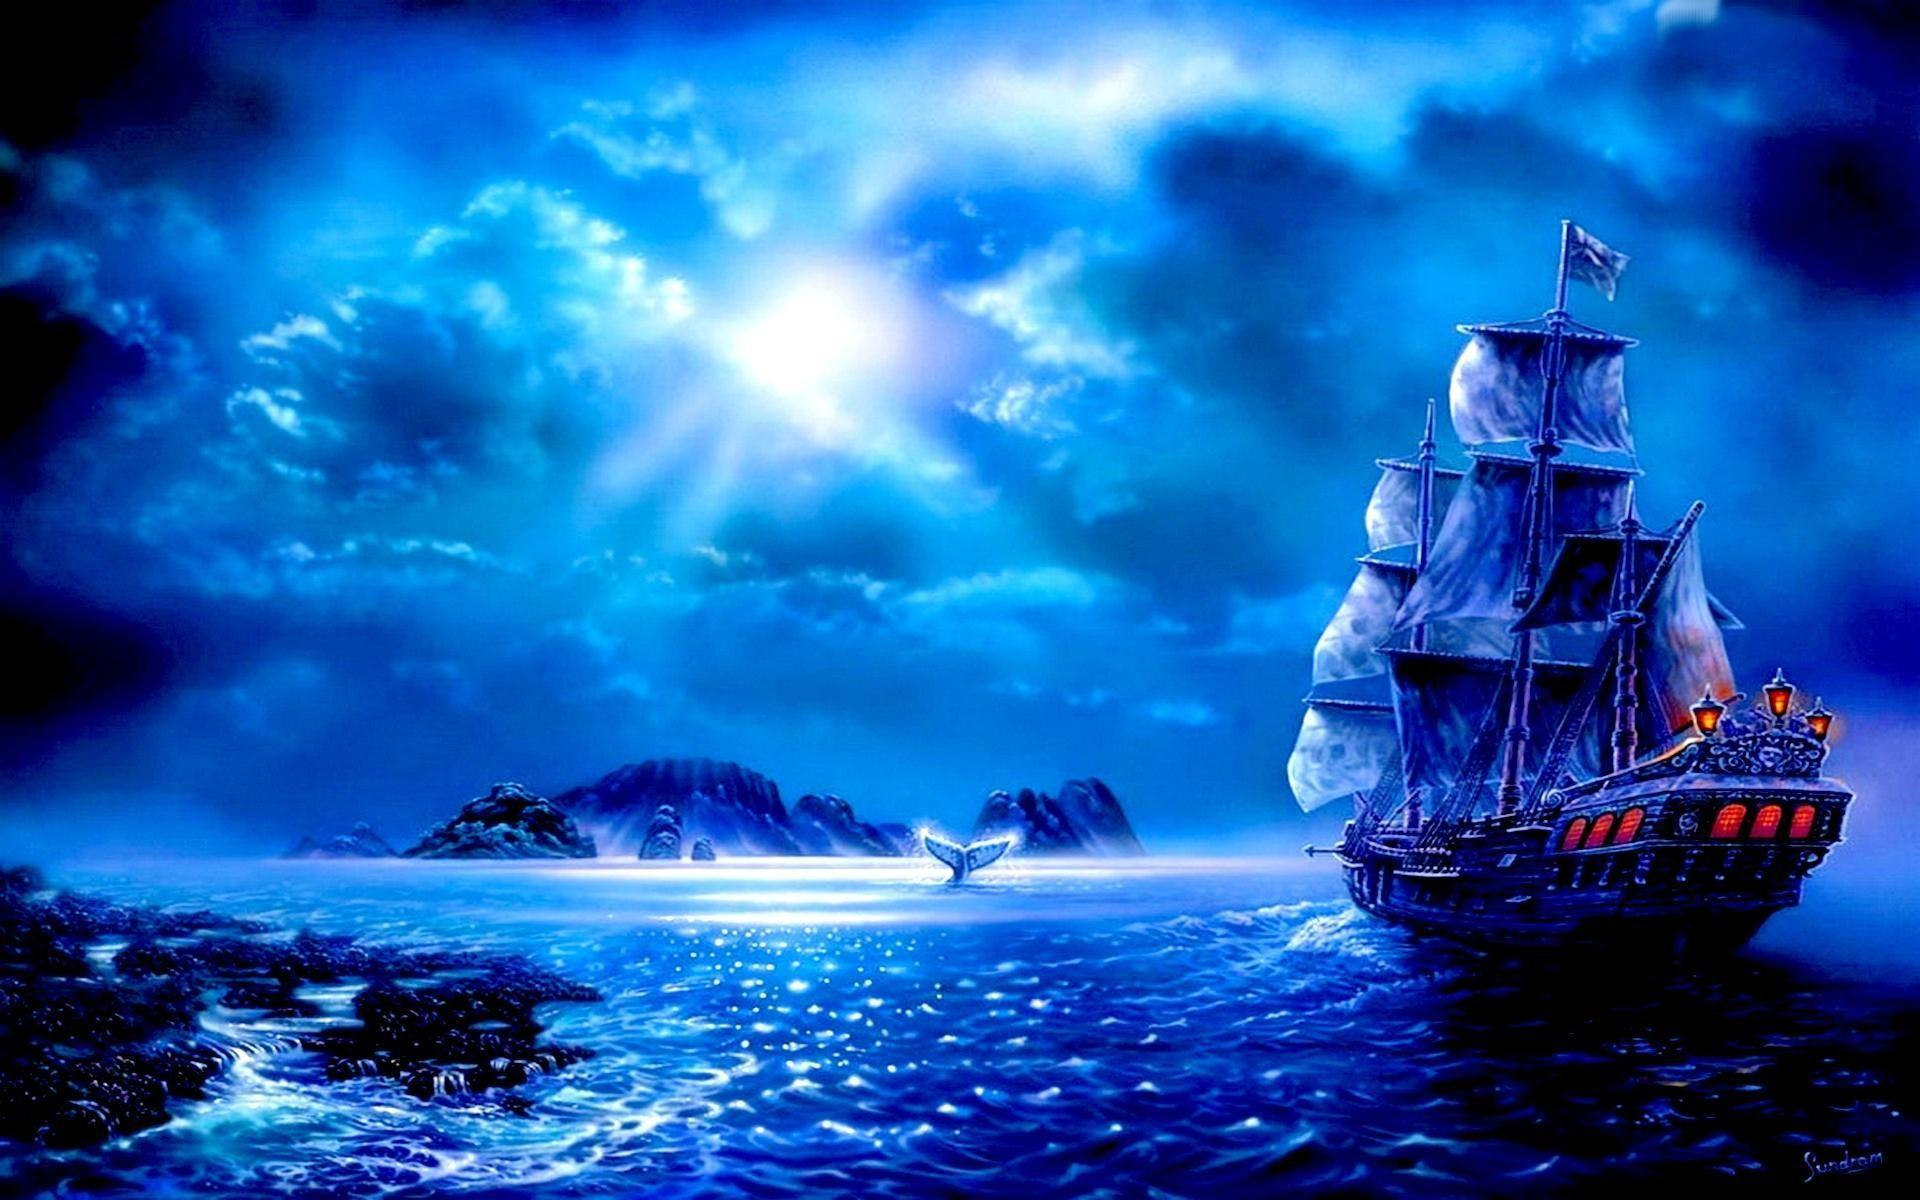 Pirate ships wallpapers wallpaper cave - Pirates hd images ...